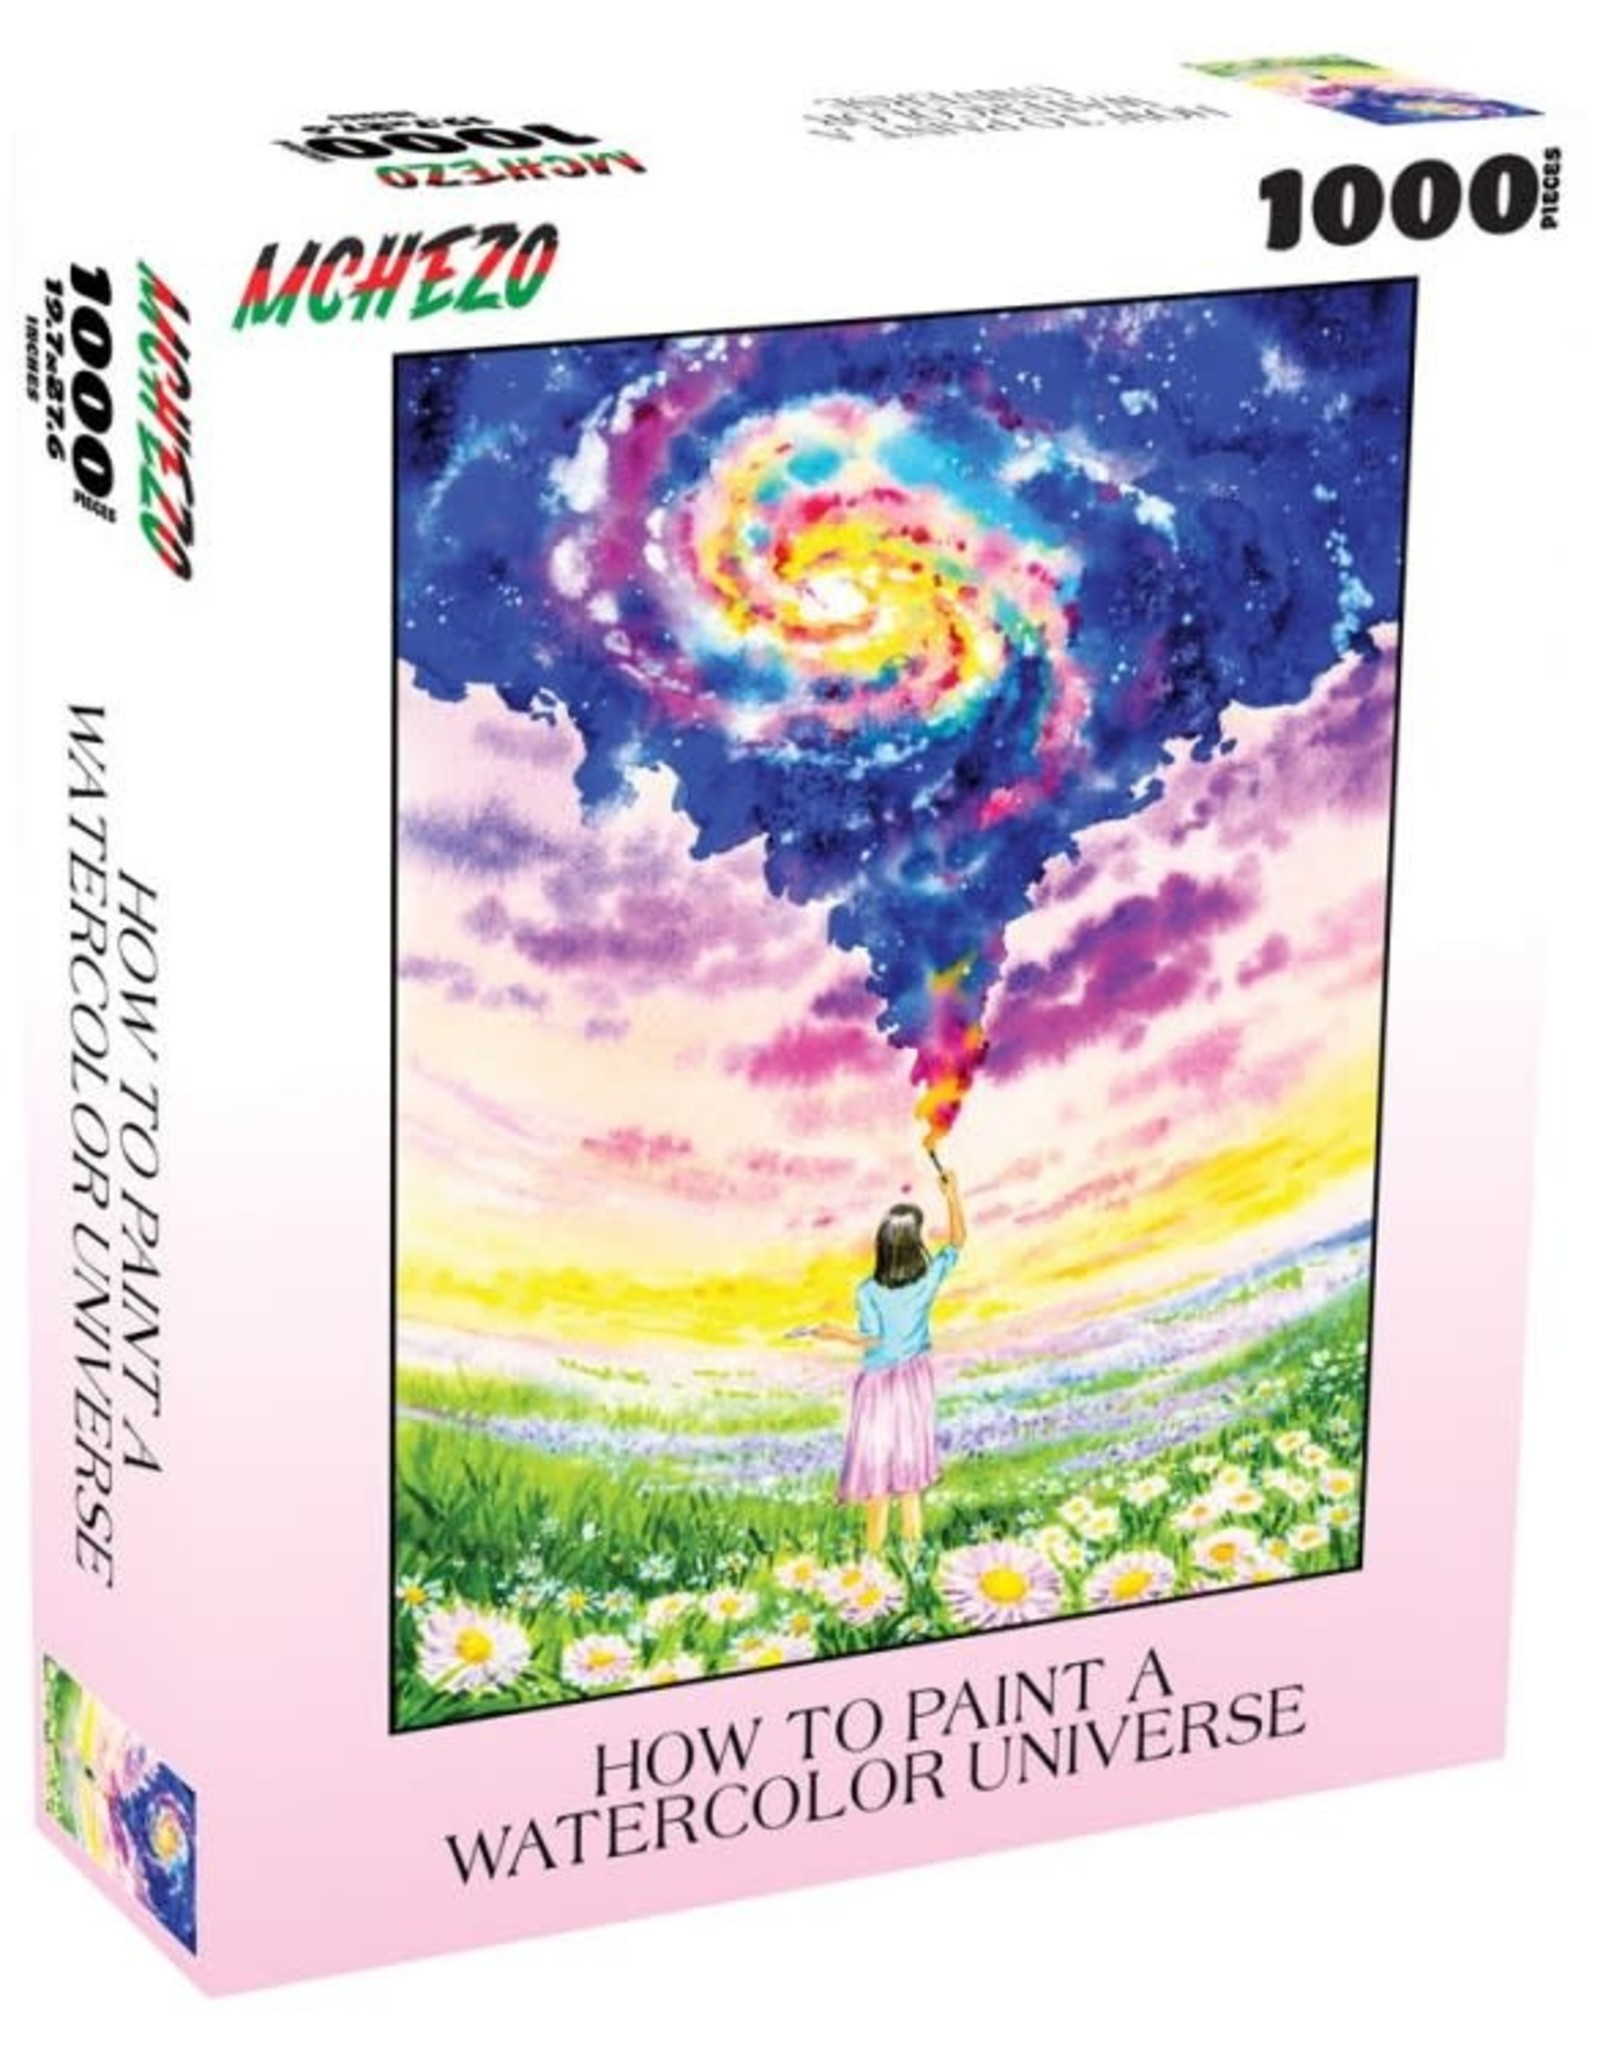 Mchezo 1000pc puzzle How to Paint a Watercolor Universe [preorder]